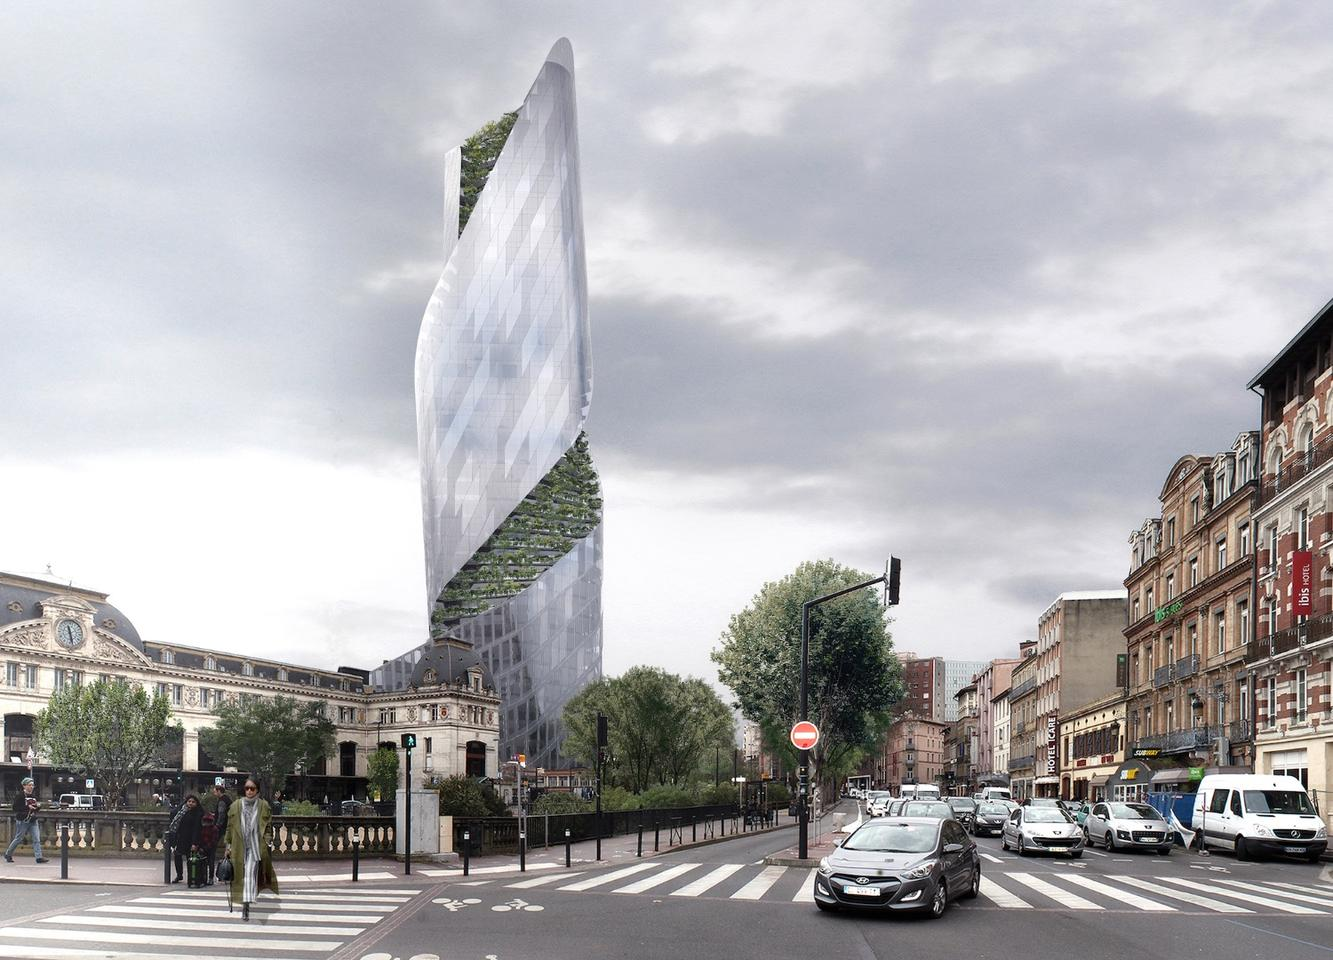 The Occitanie Tower will feature a glazed facade that's broken up by a twisting ribbon of greenery